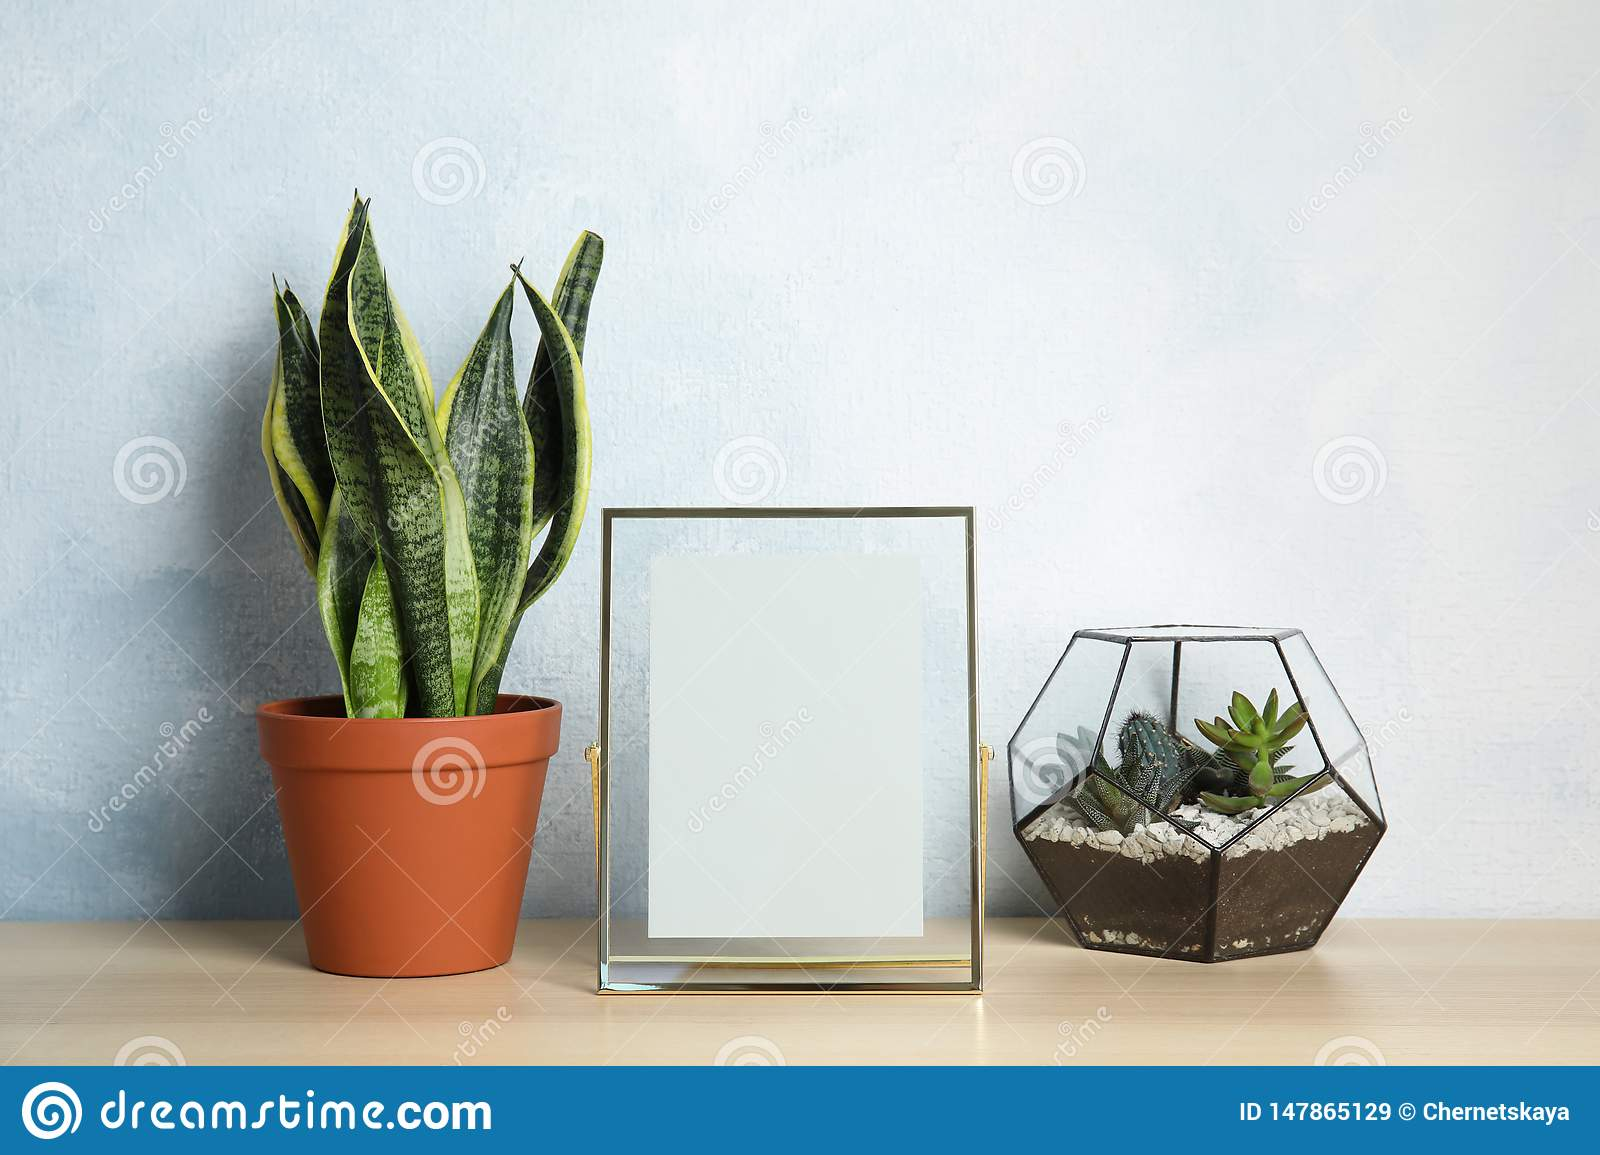 Exotic plants and photo frame on table near color wall. Home decor